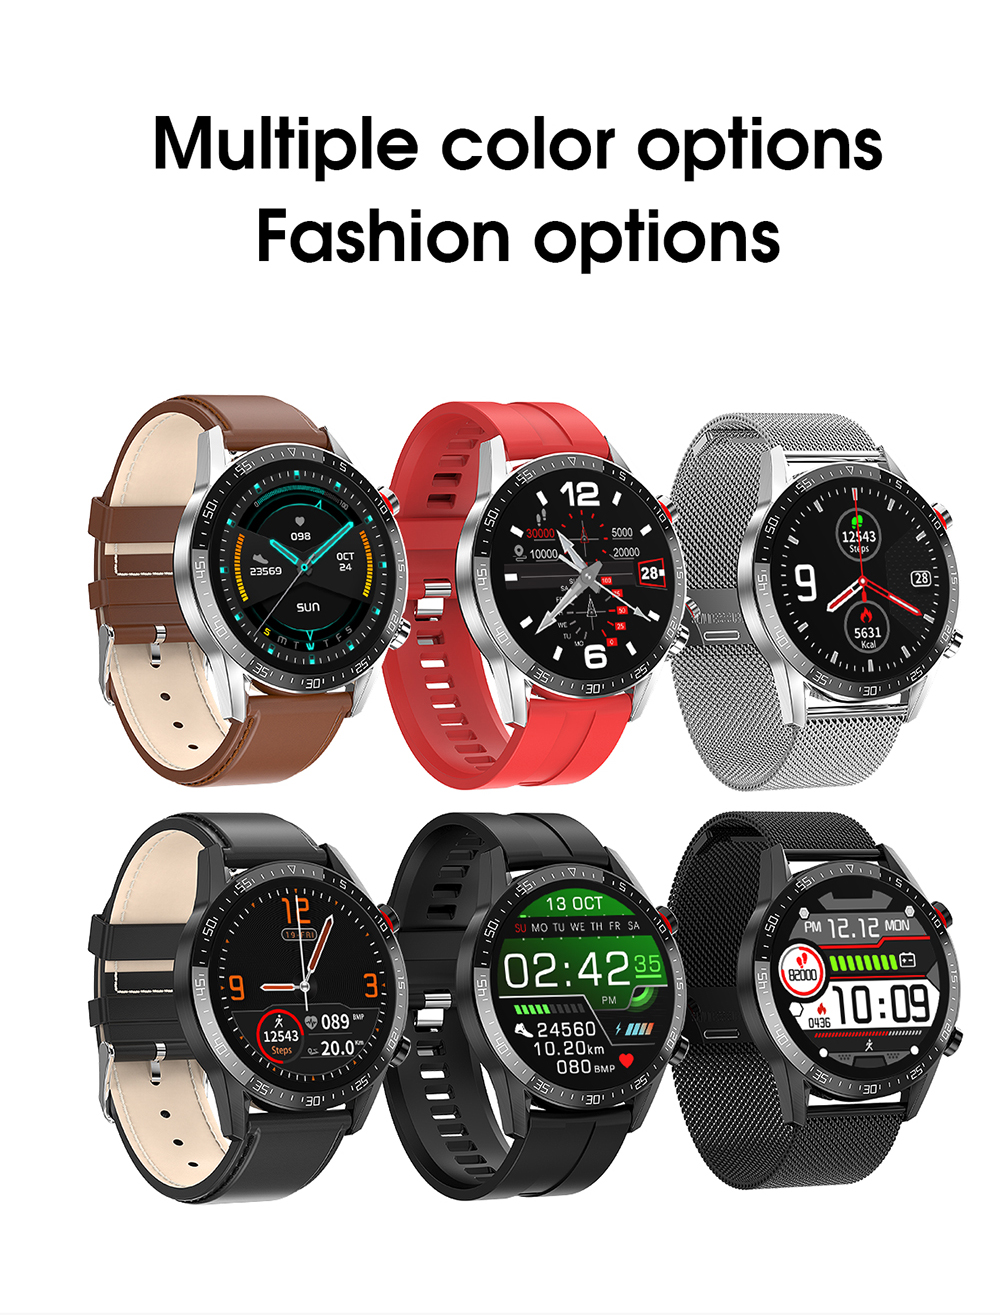 H08407733091e4c2faa8c773d590e0f79S Reloj Inteligente Hombre Smart Watch Men 2020 Android IP68 Smartwatch Answer Call Smart Watch Man For Huawei Android Apple Phone